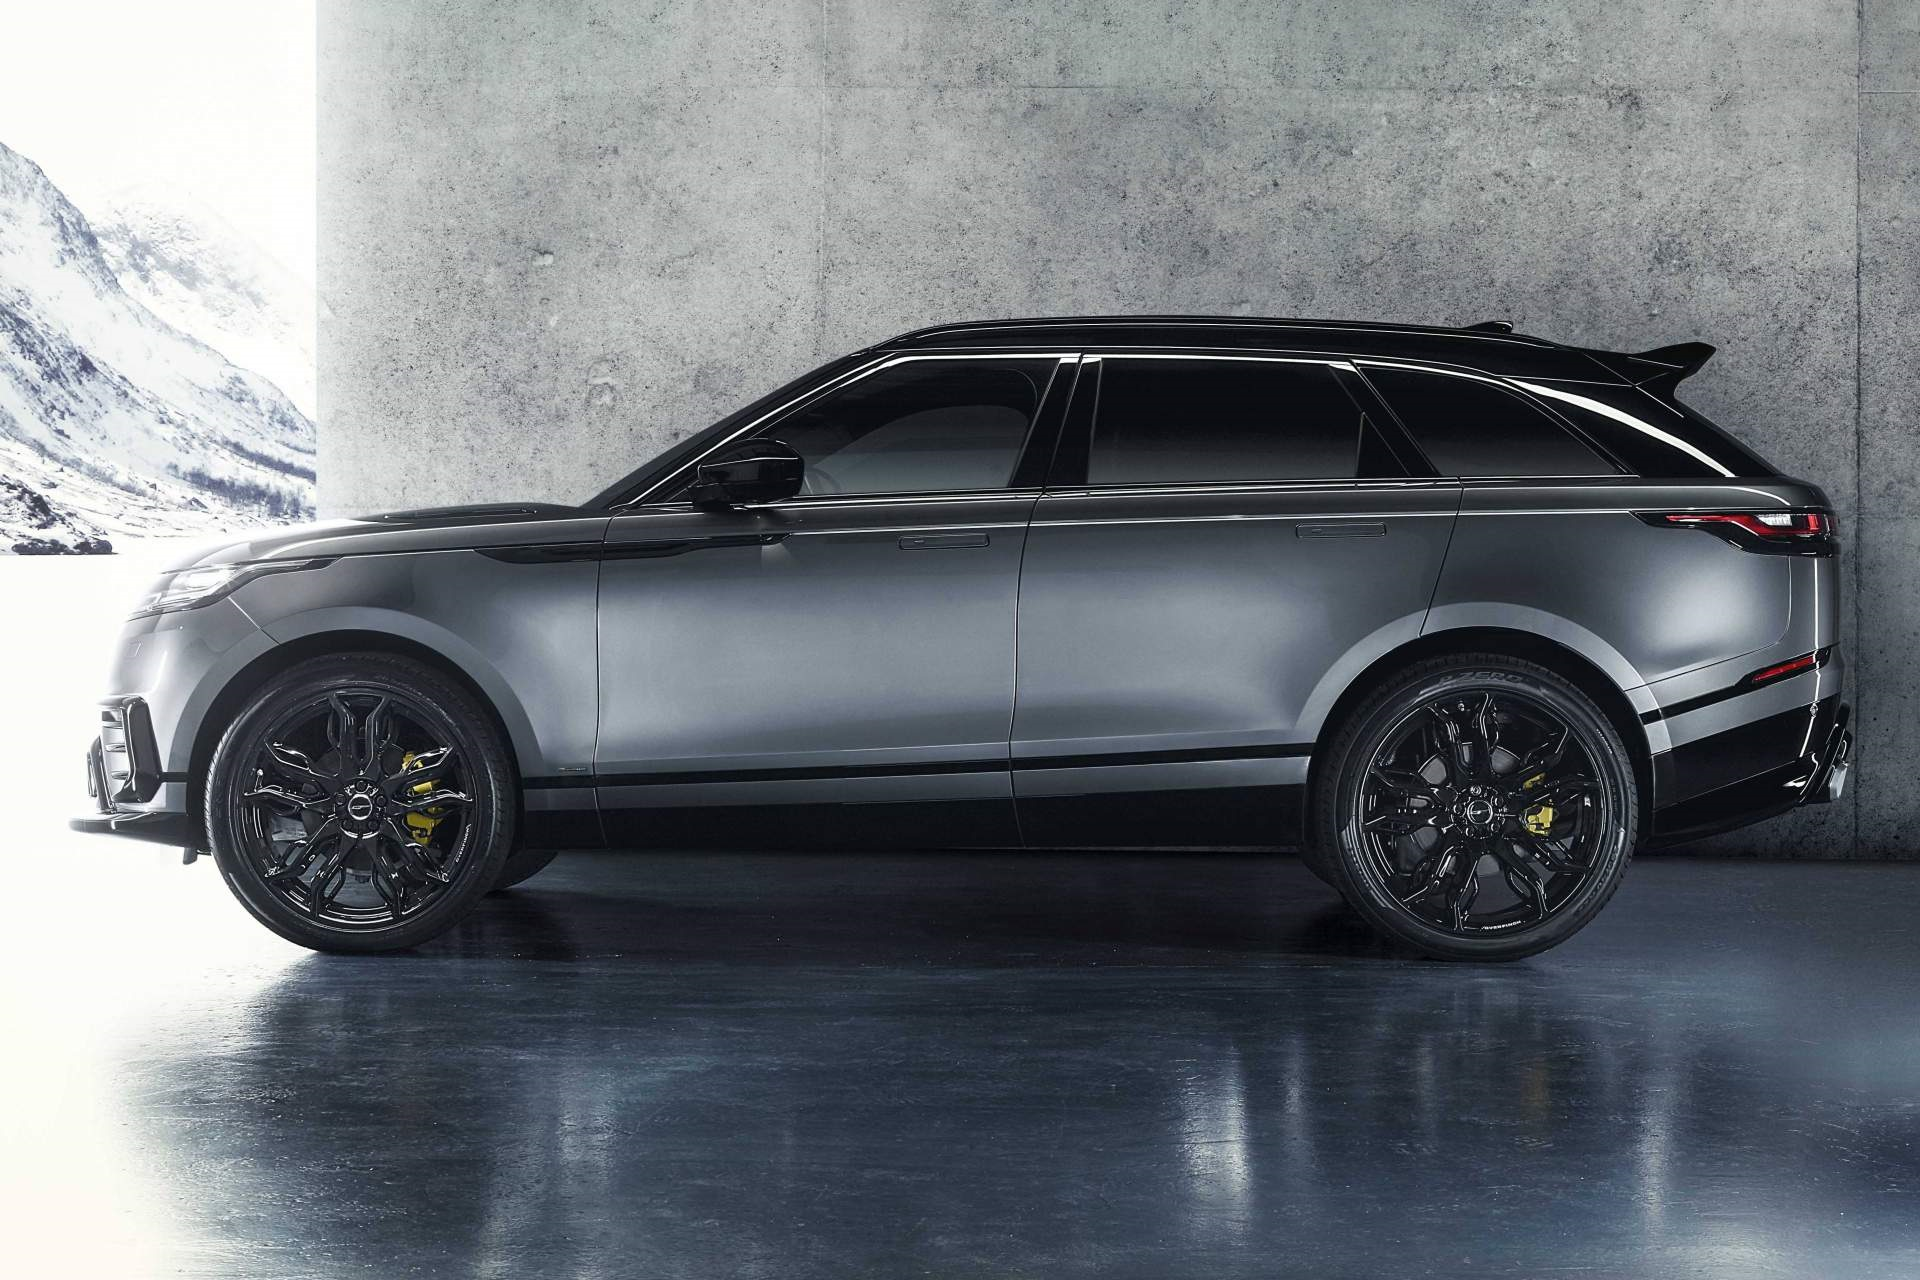 Range Rover Velar by Overfinch (2)